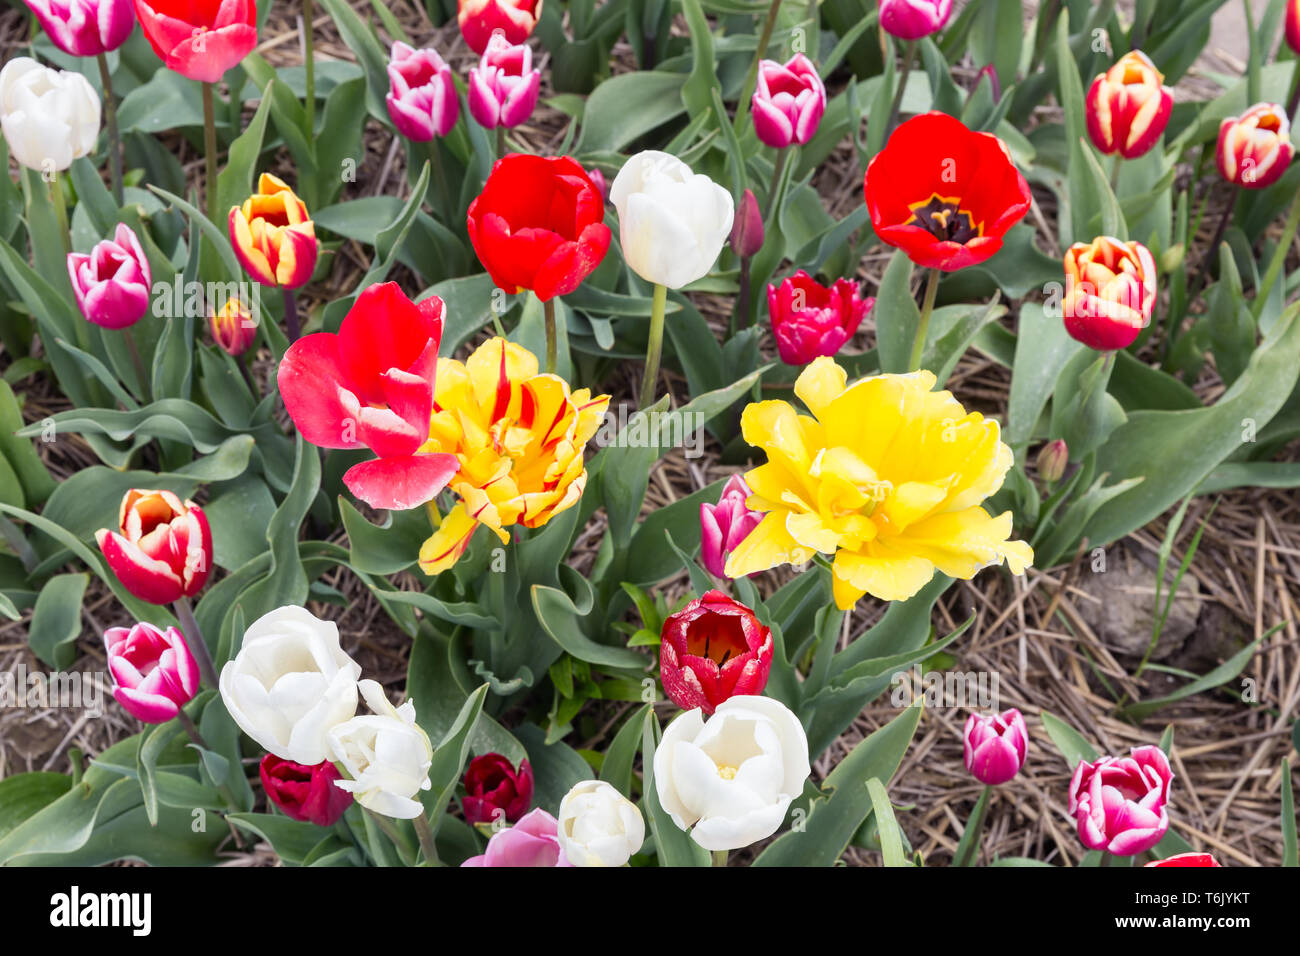 Top view of beautiful varicolored tulips - Stock Image